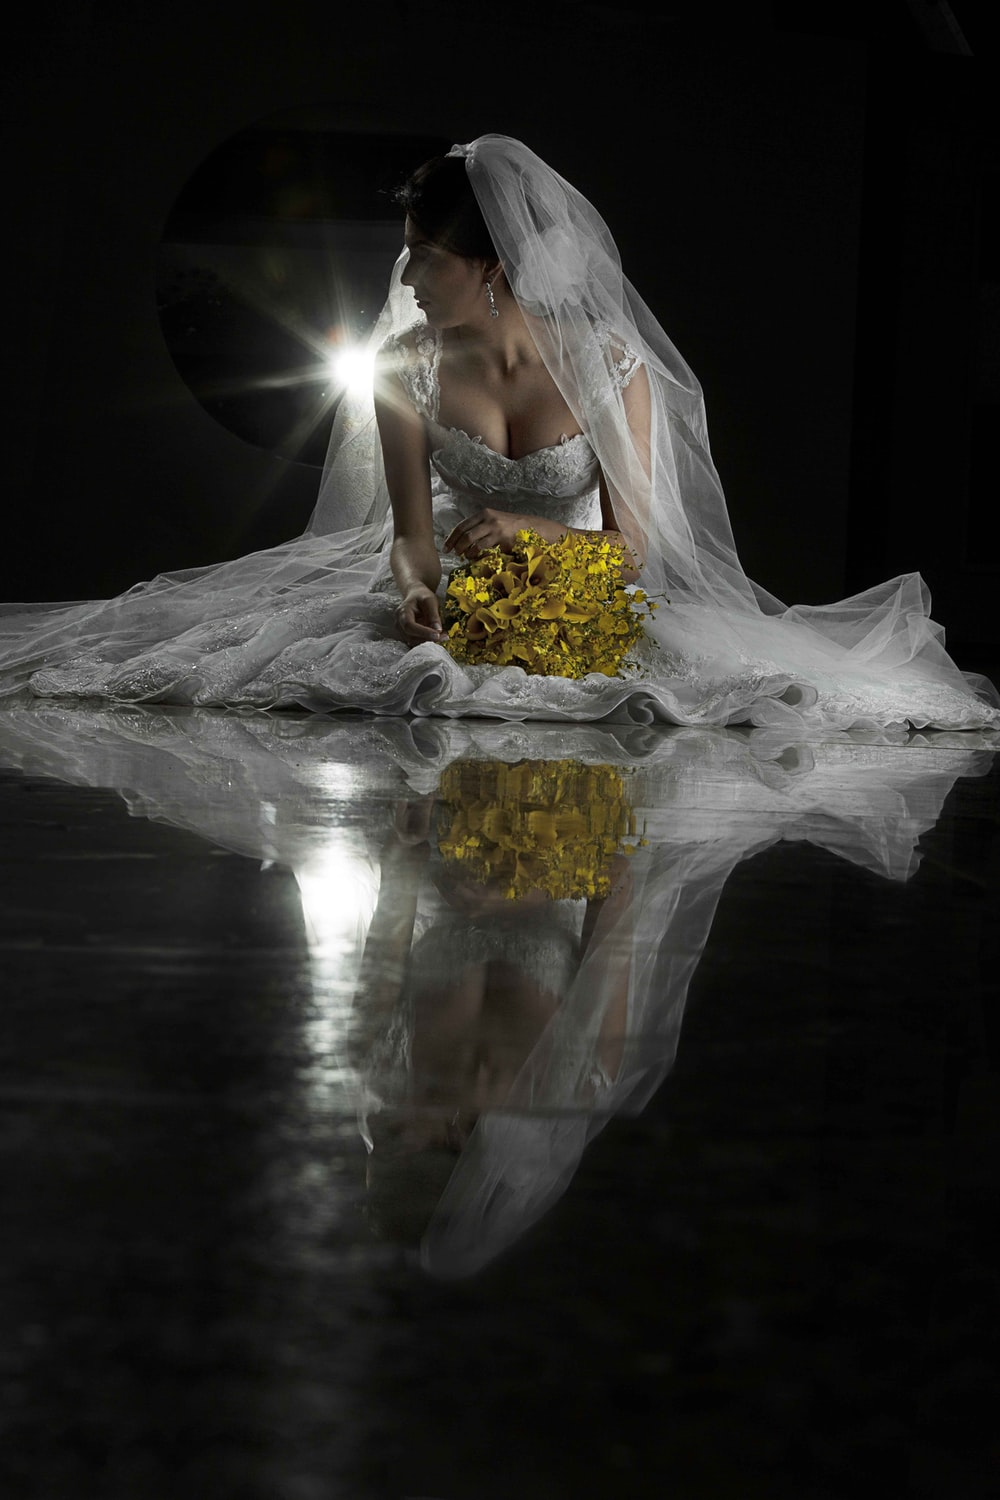 Woman In White Sleeveless Wedding Dress Holding Yellow Bouquet Of Flowers Photo Free Light Image On Unsplash,Cute Fall Dresses For Weddings